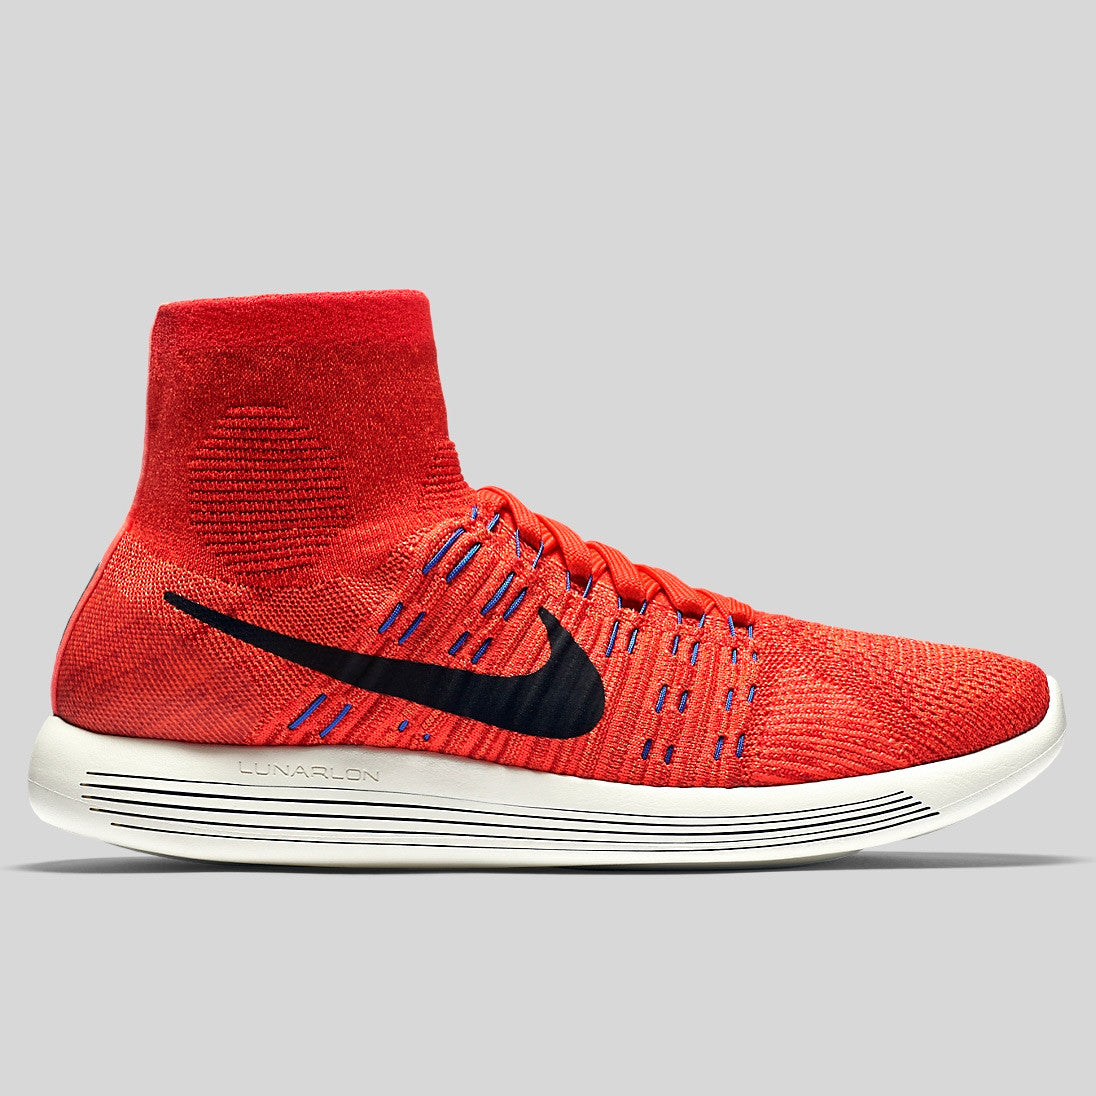 d06a5057e99177 Nike Lunarepic Flyknit University Red Black Total Crimson (818676-600)